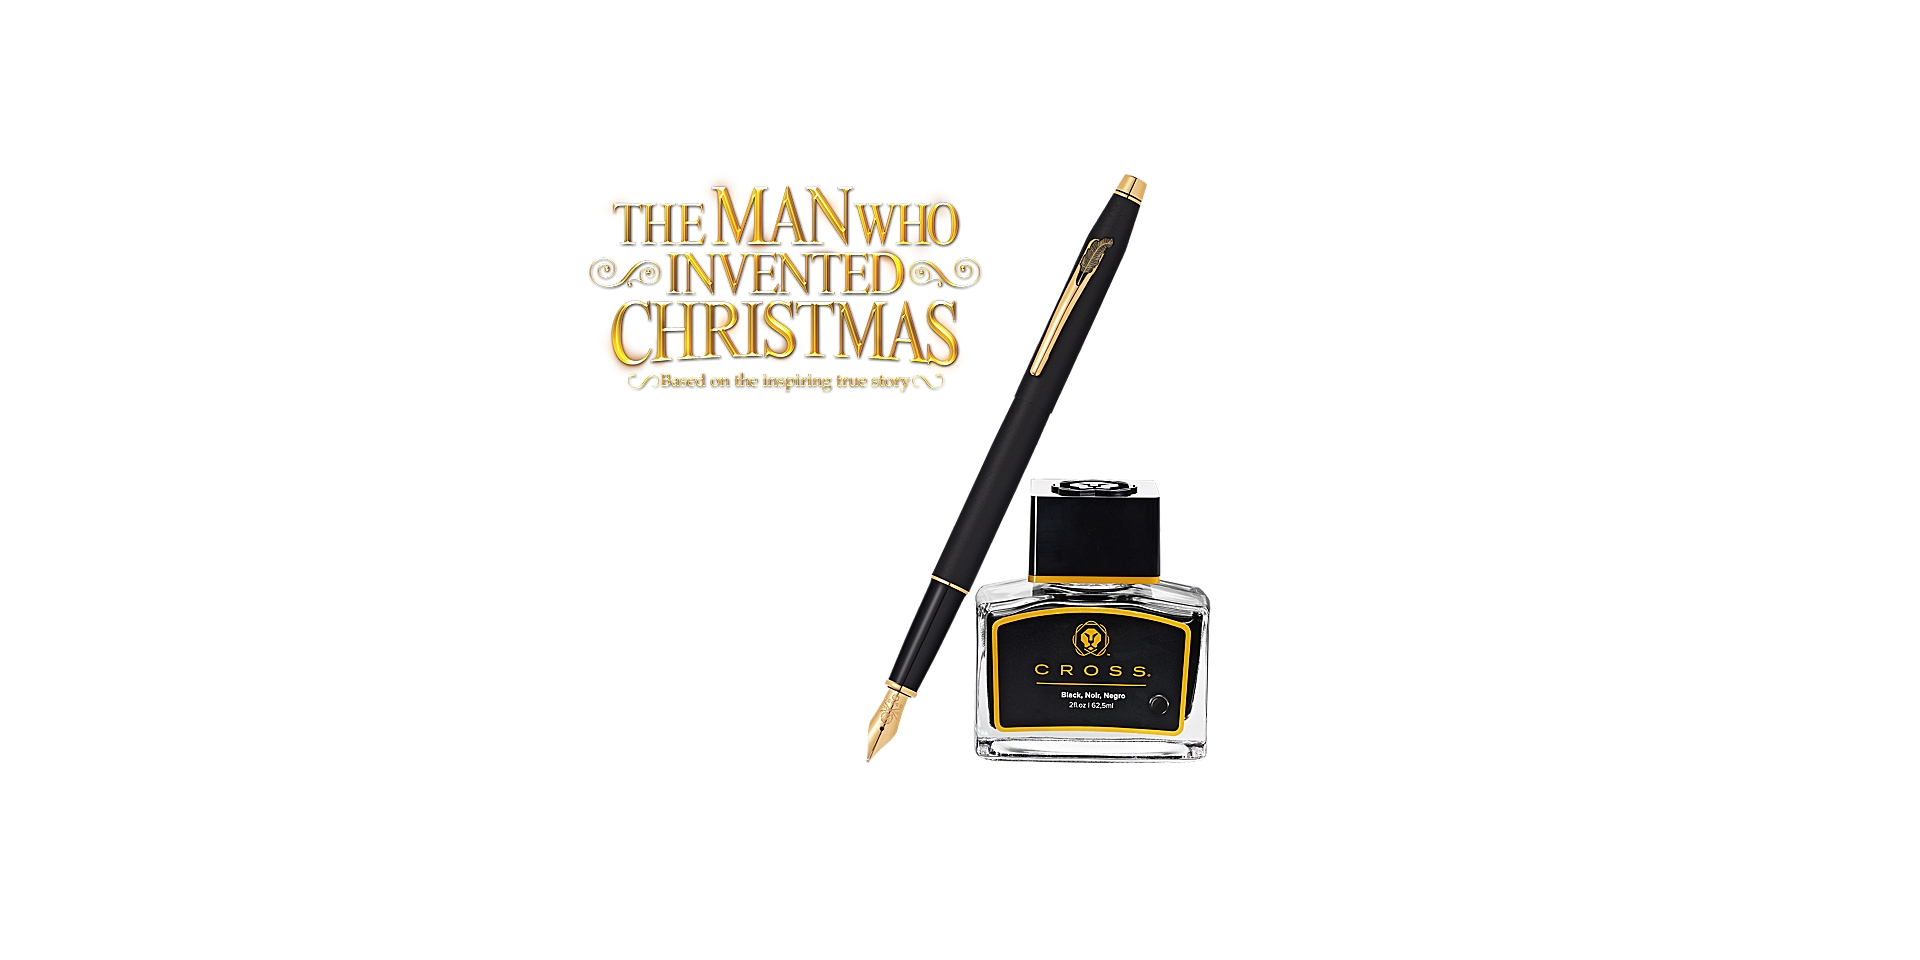 Cross Classic Century Classic Black and 23KT Gold-Plate Fountain Pen and  ... Picture